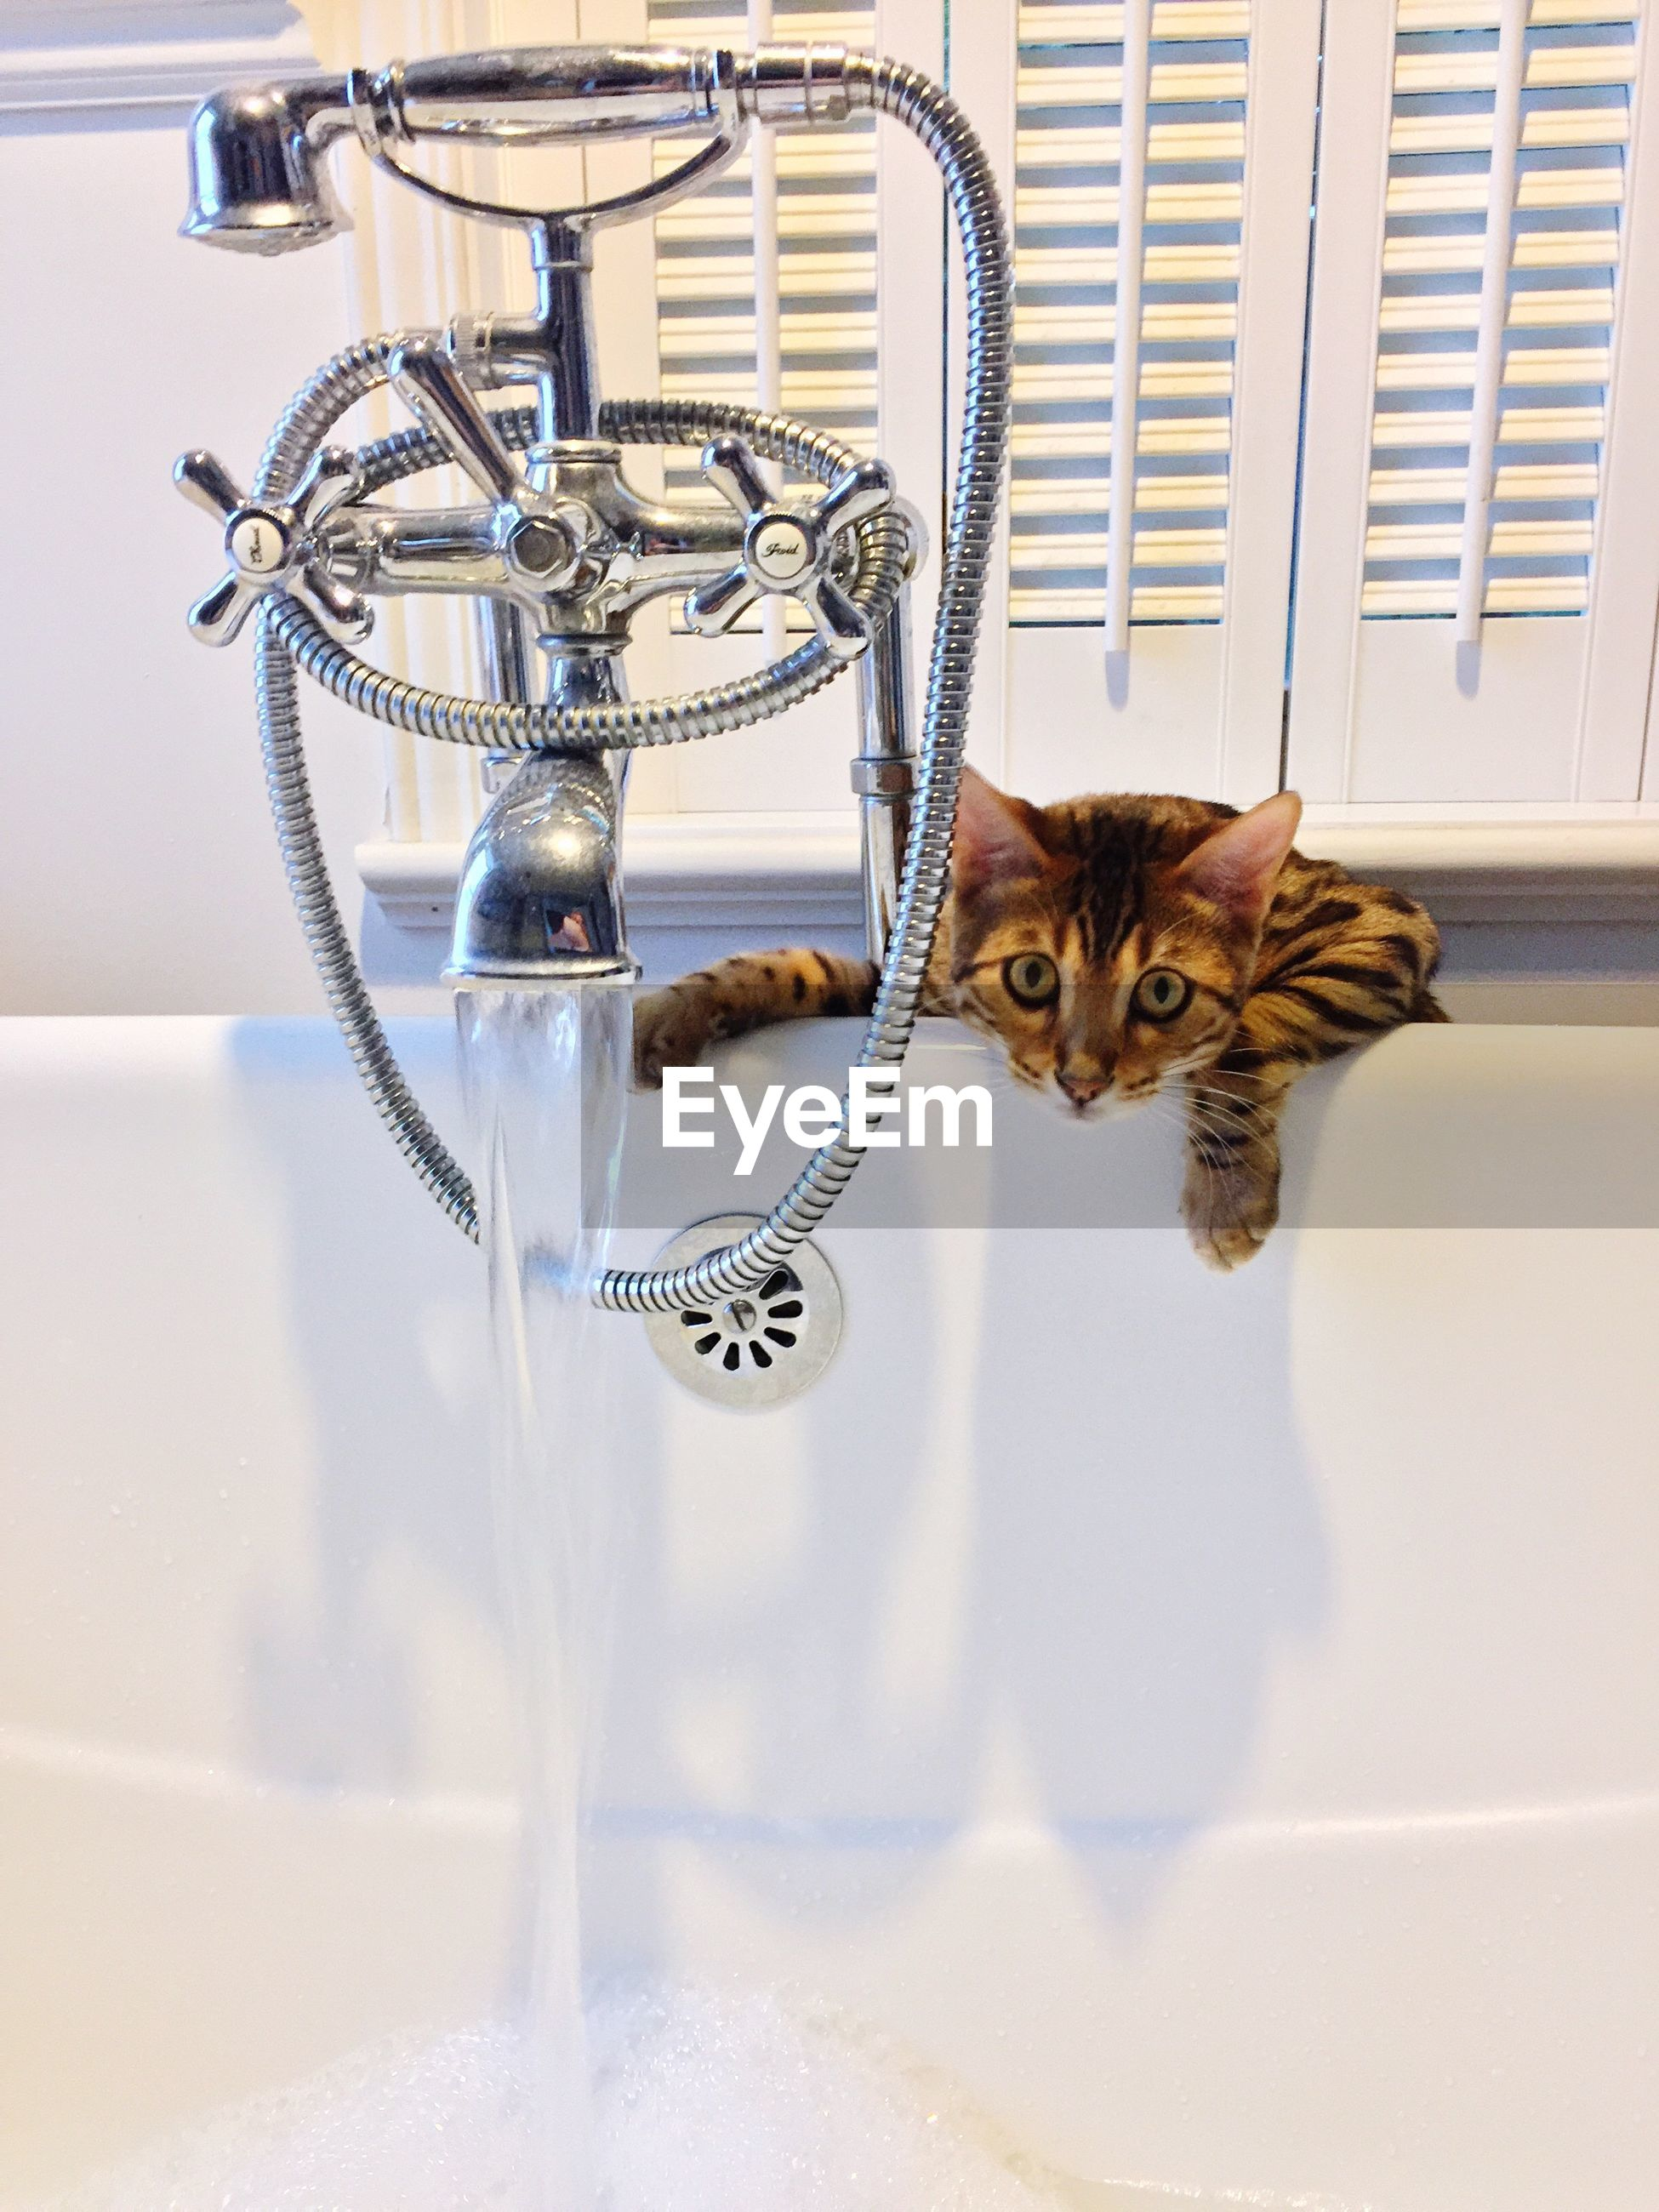 Cat behind faucet looking at camera